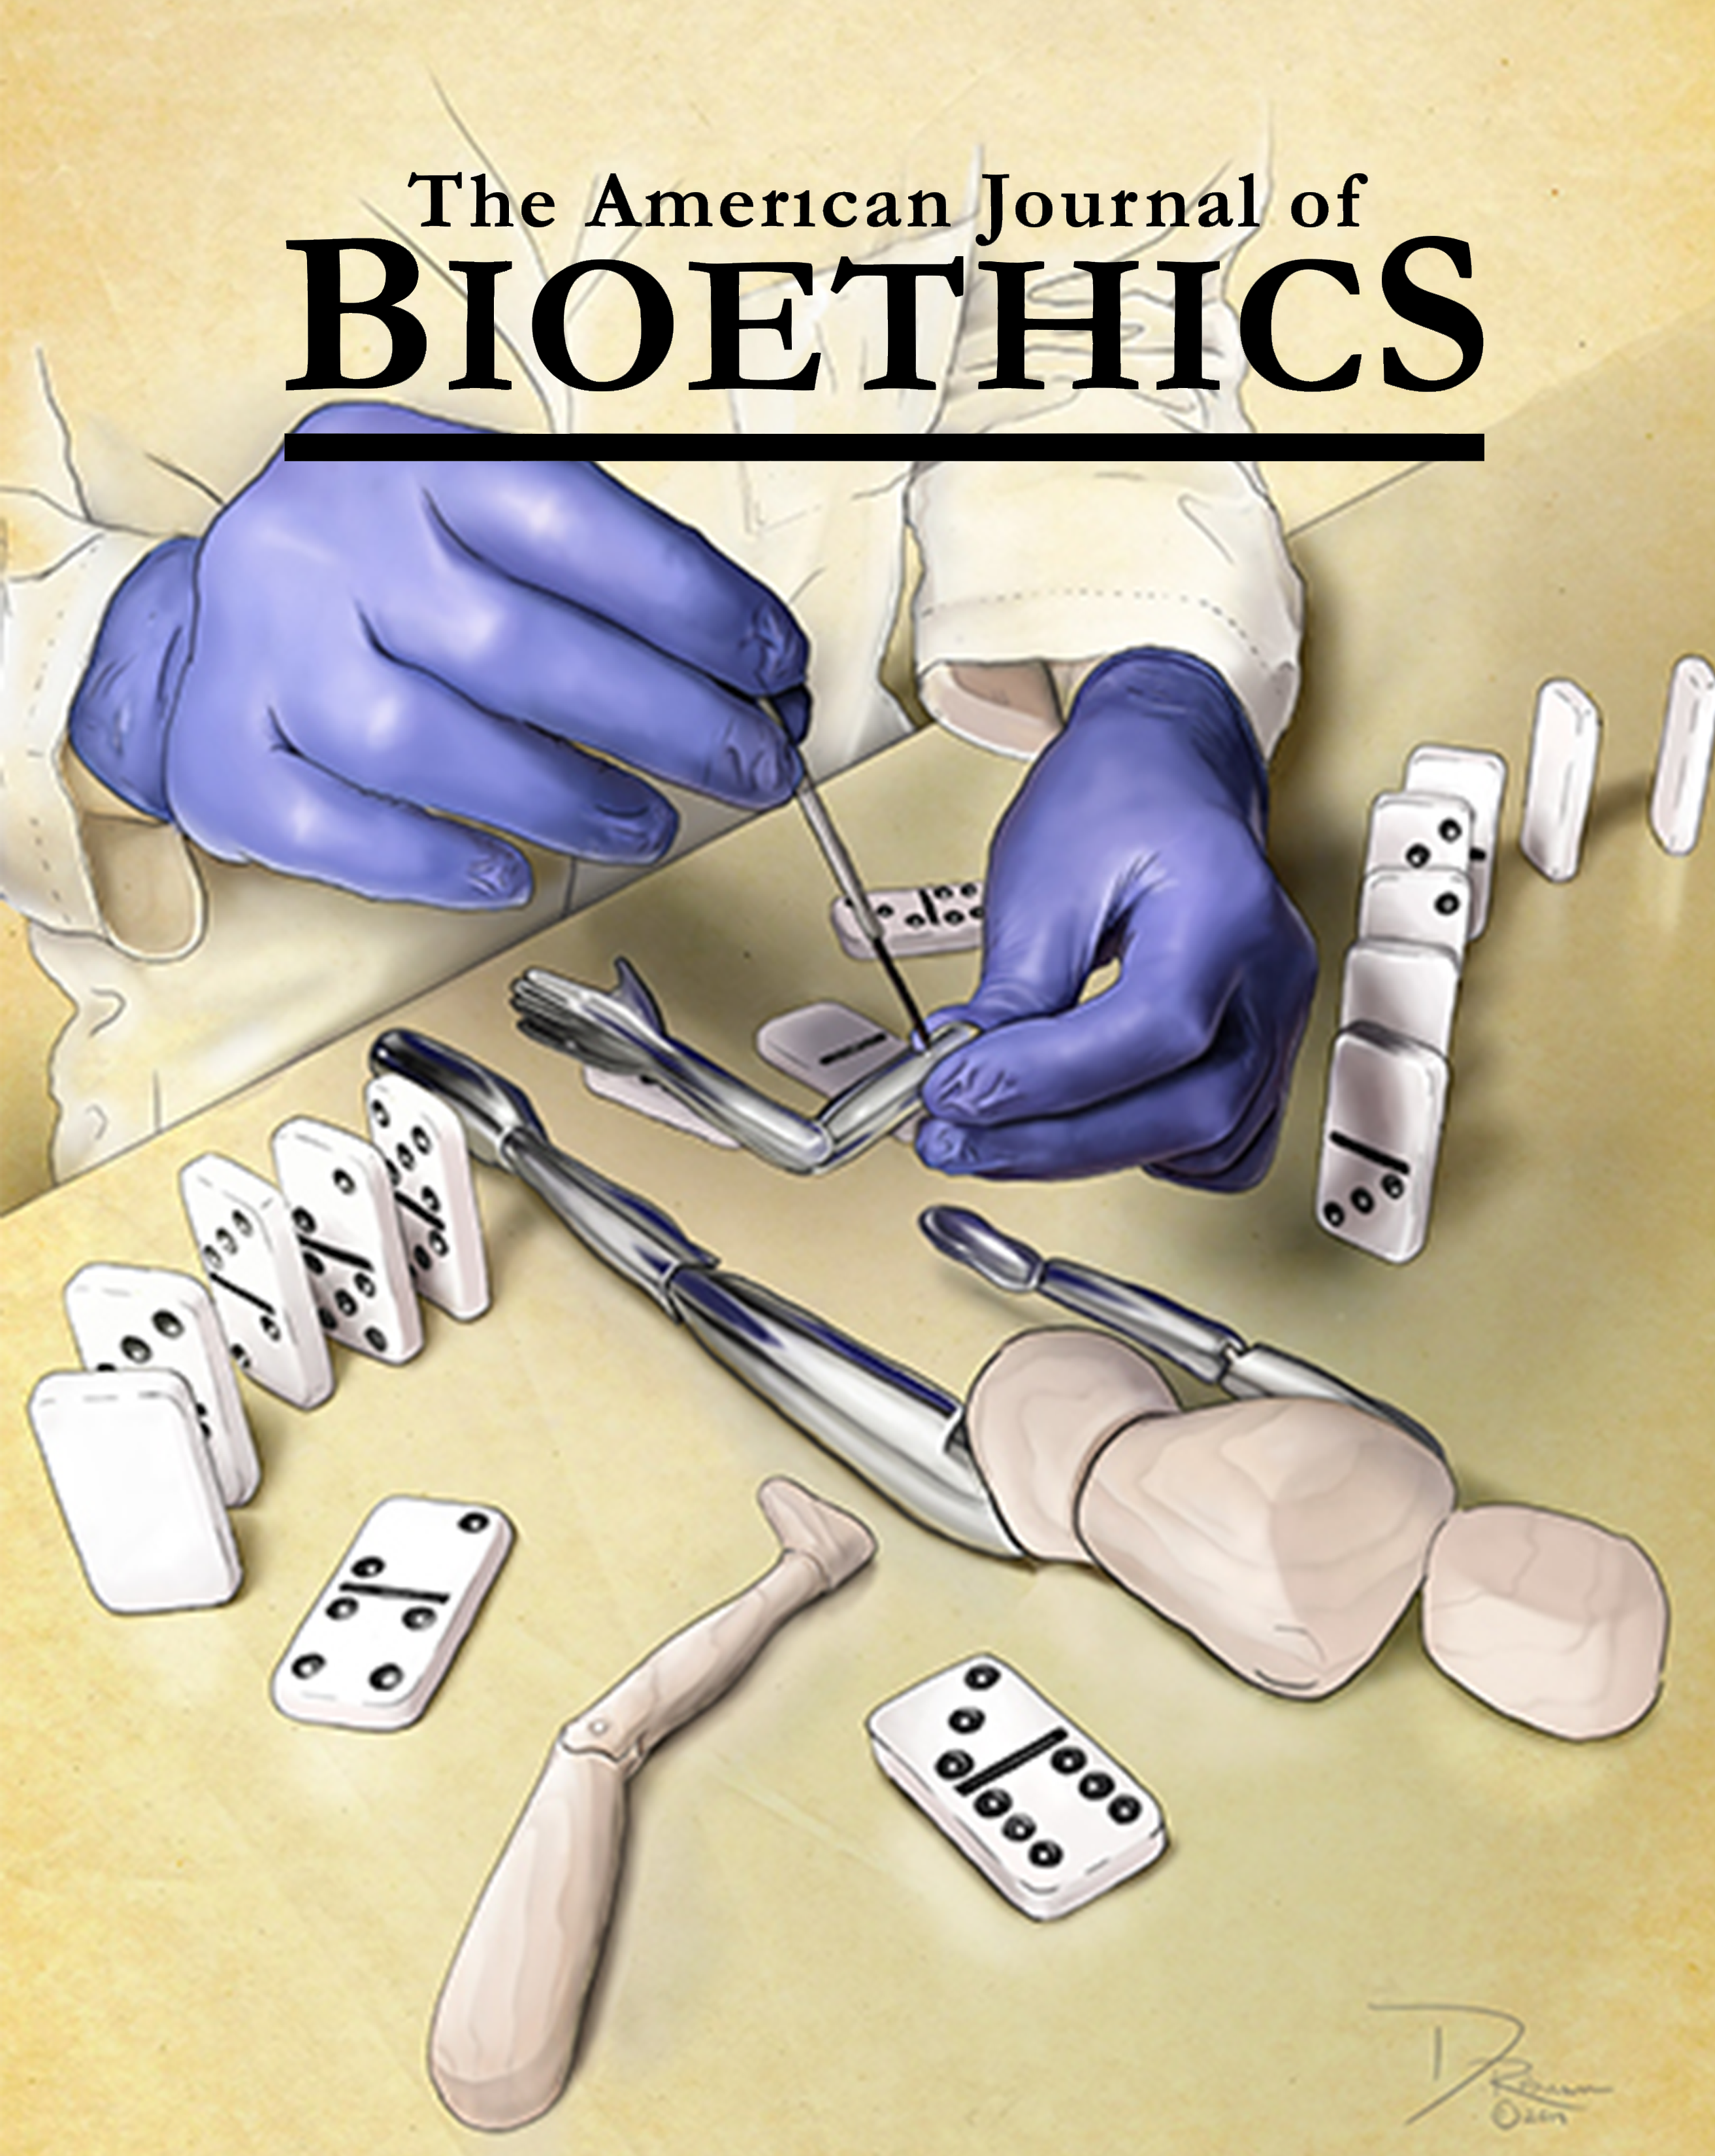 July 2019 cover of the American Journal of Bioethics by Dani Robinson